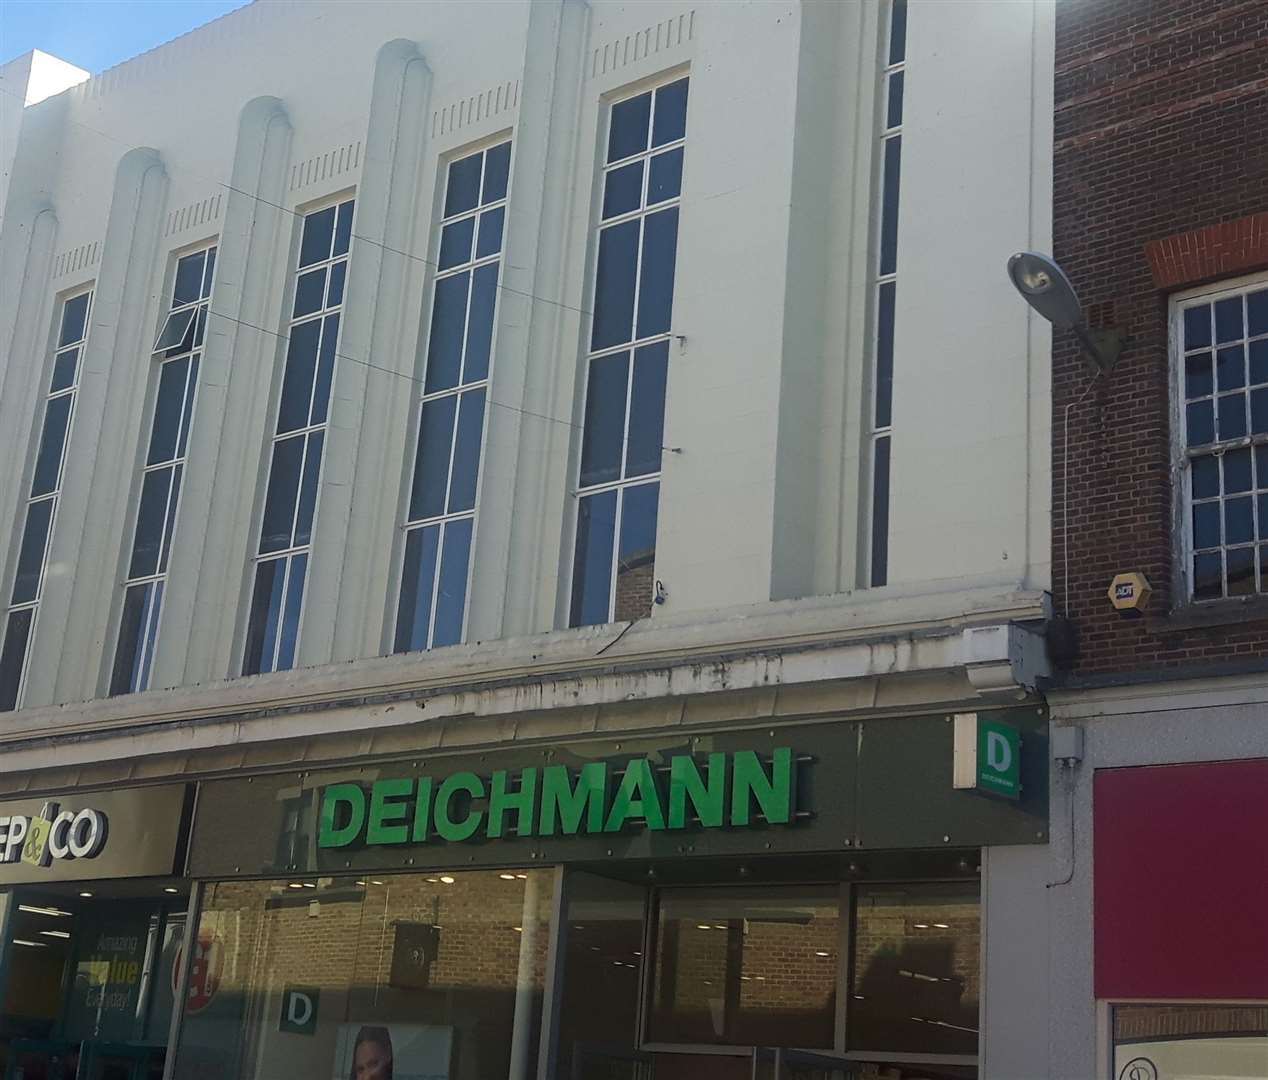 Deichmann is set to re-open this weekend